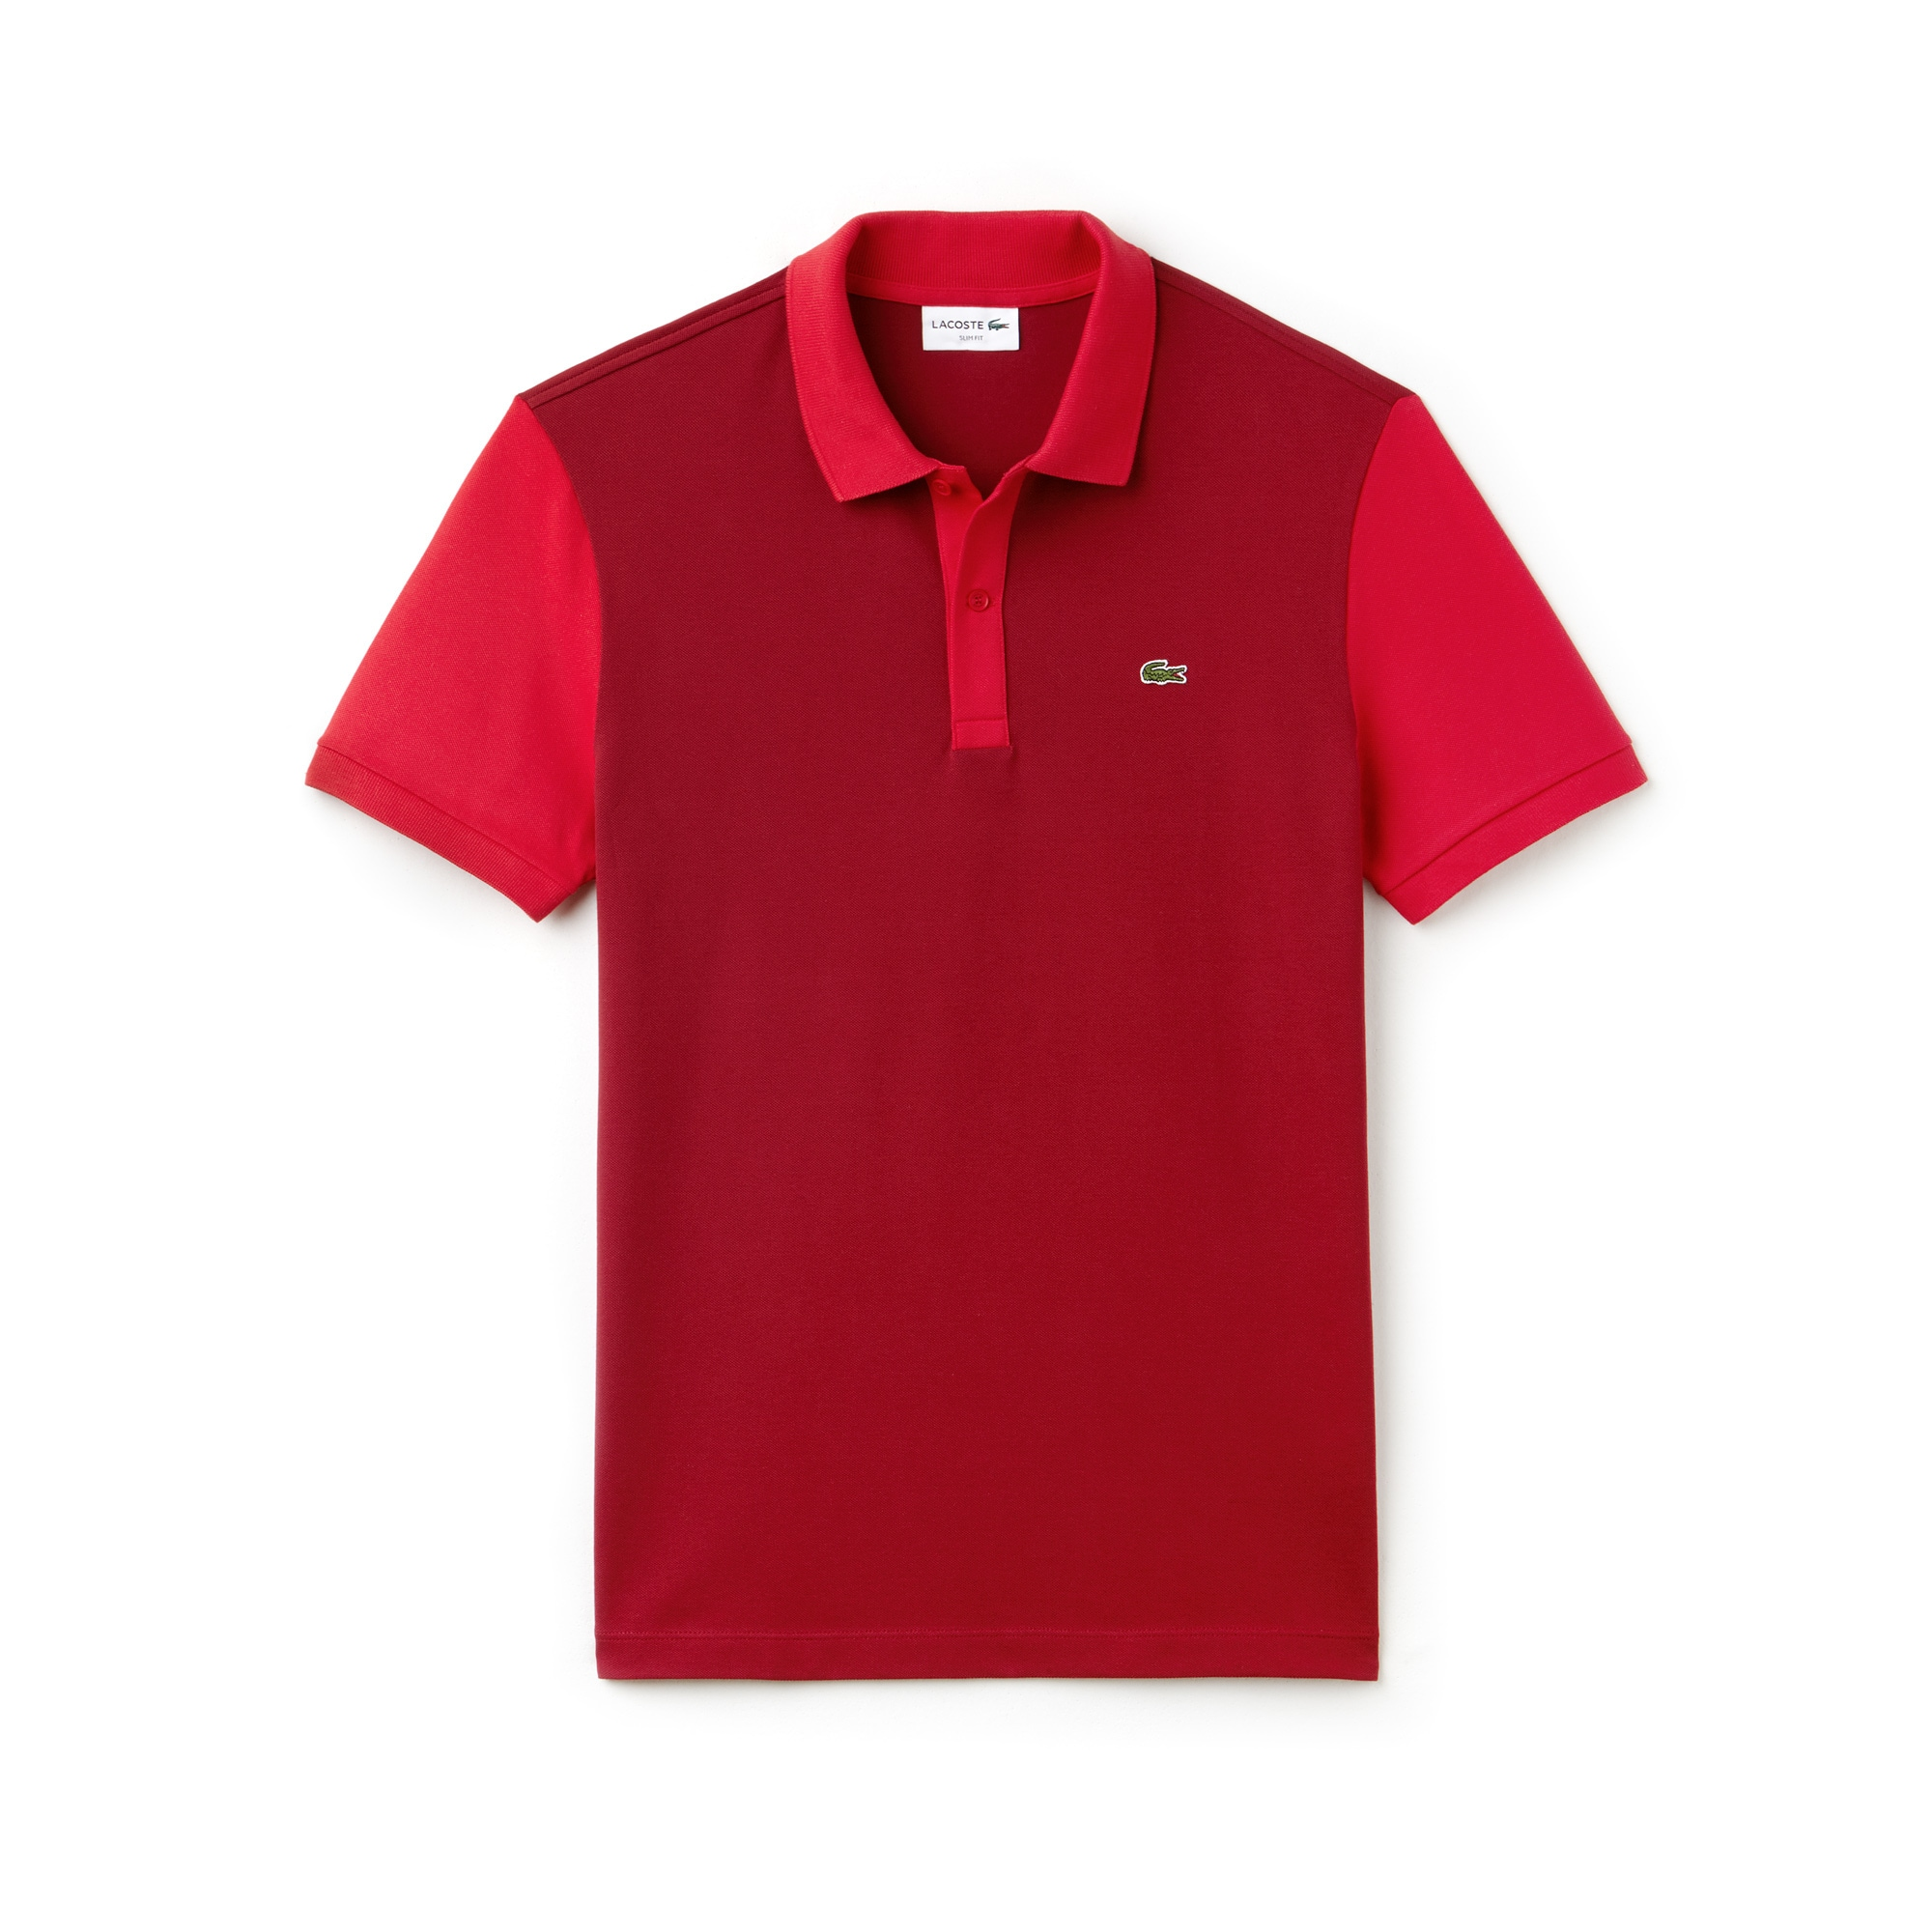 Men's Lacoste Slim Fit Colorblock Stretch Pima Piqué Polo Shirt